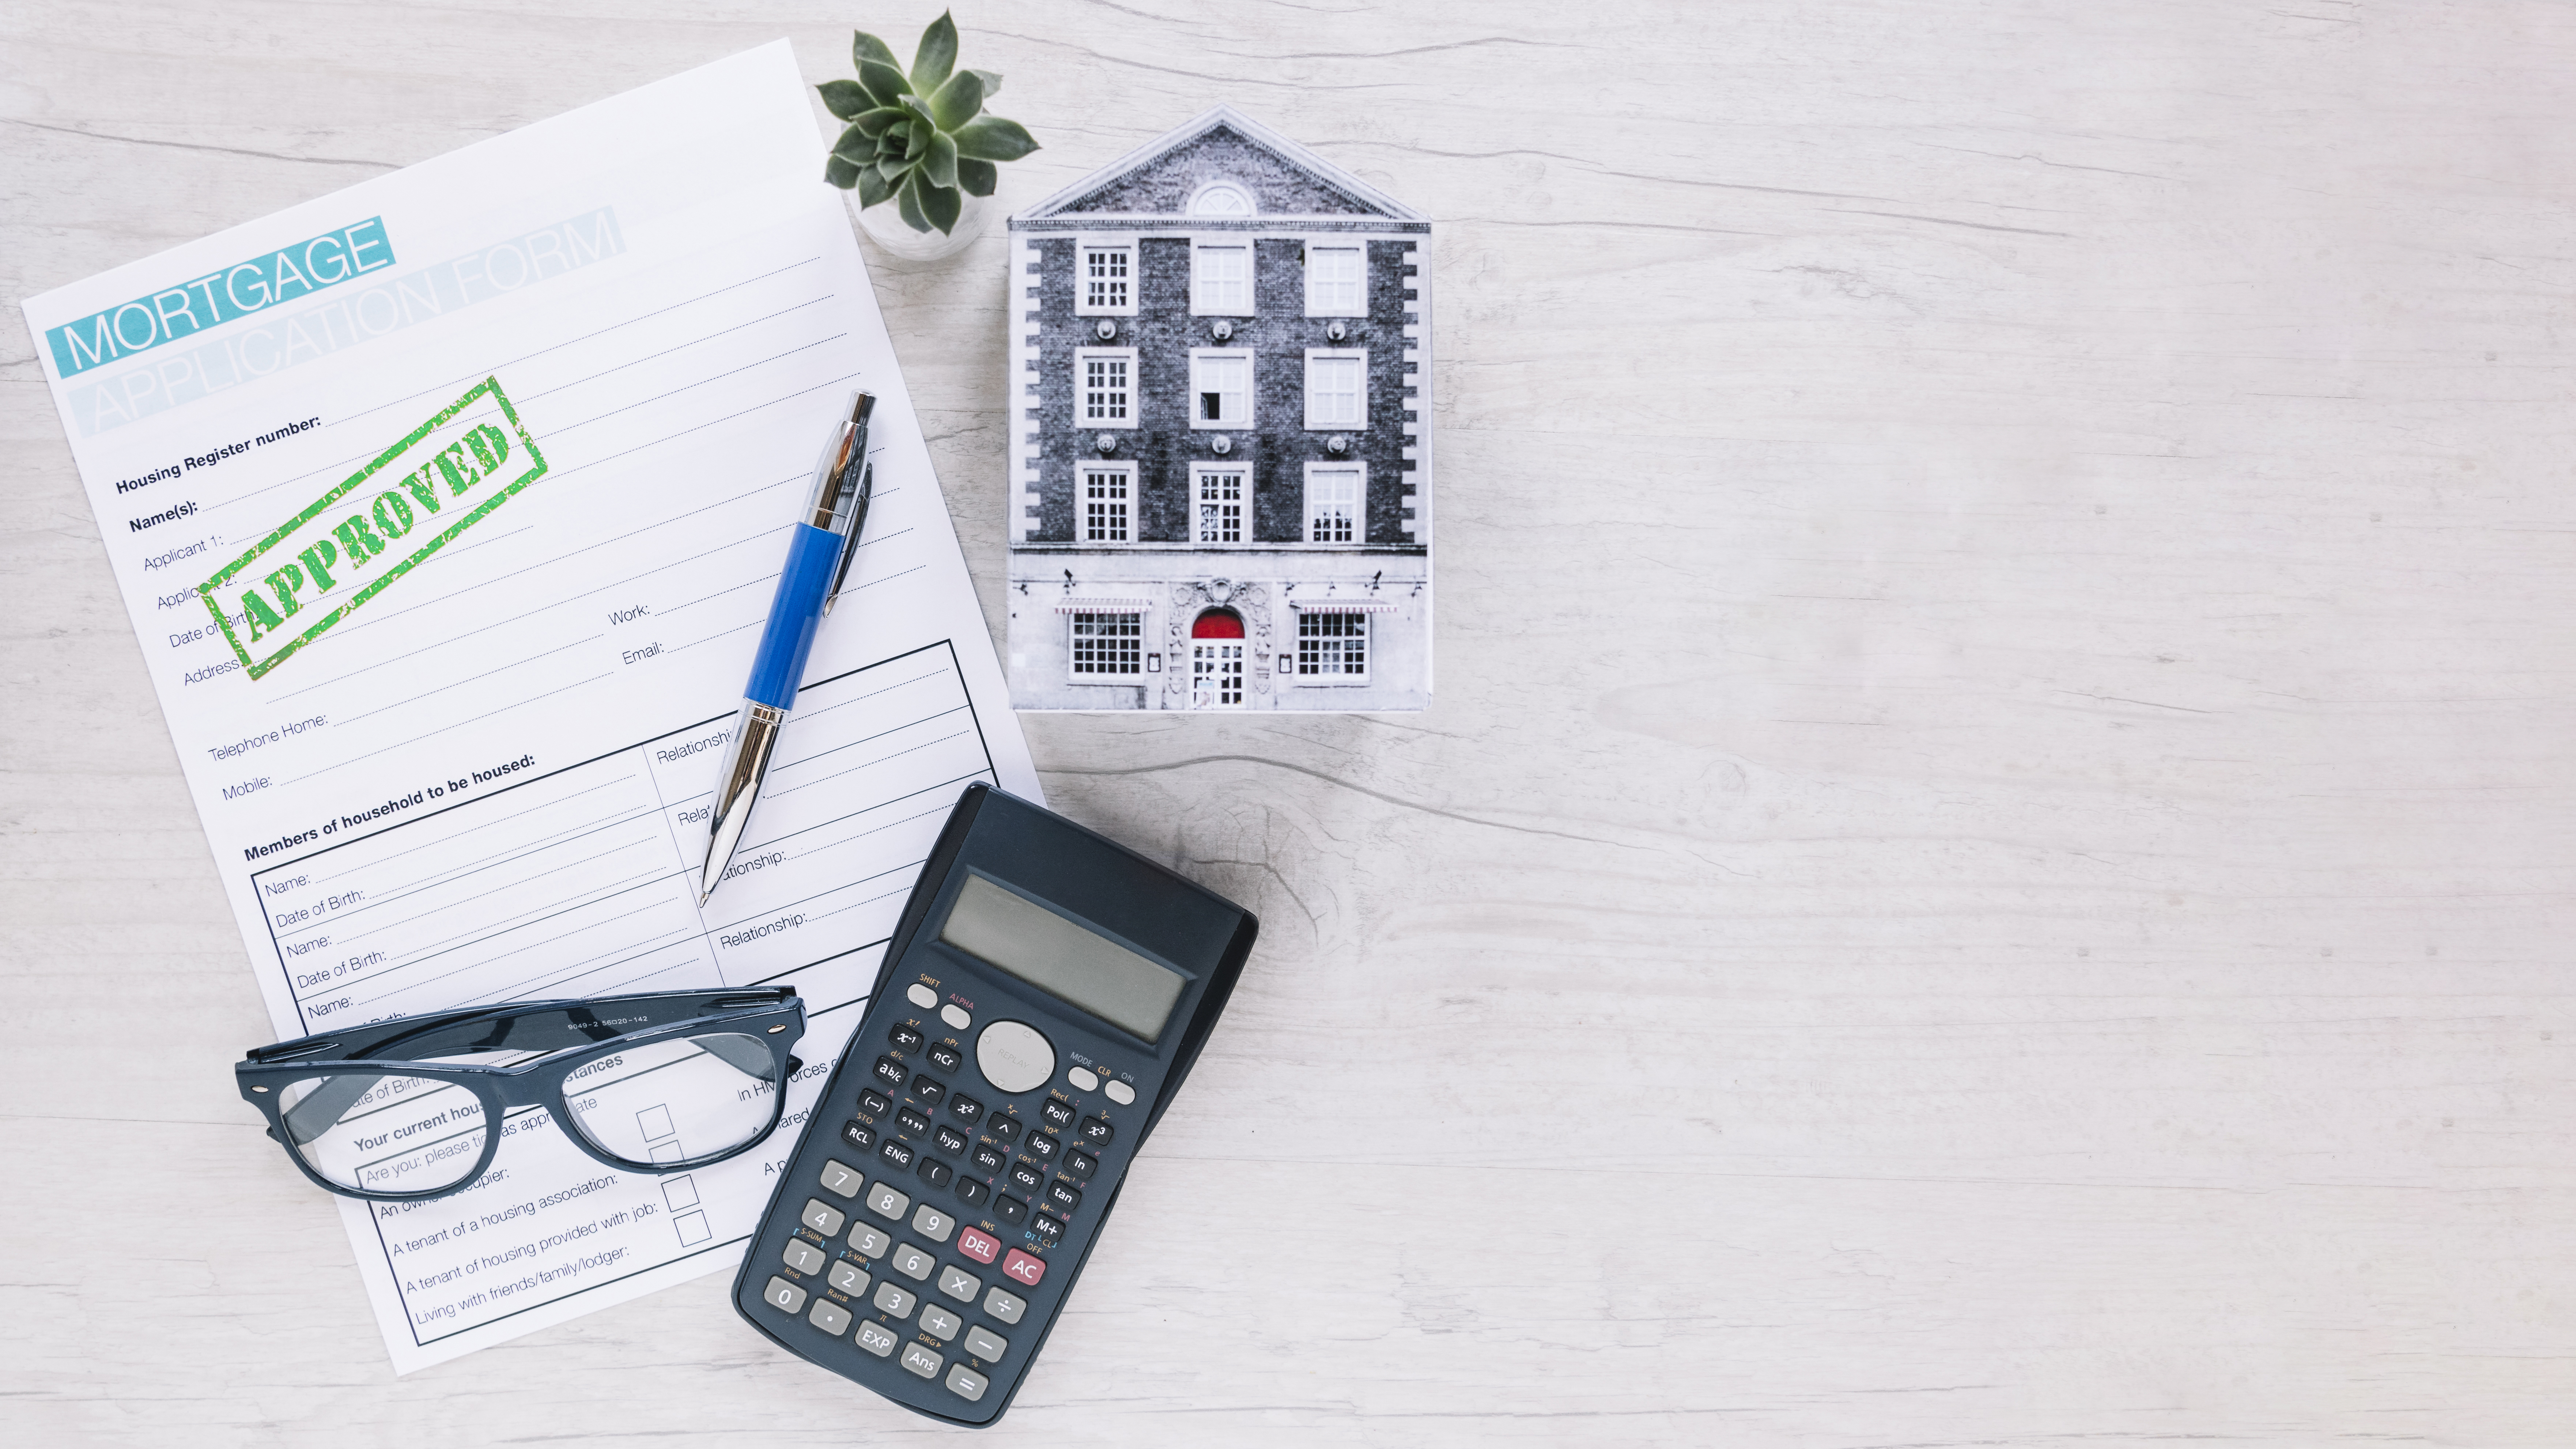 calculator, mortgage approval form, eyeglass and cutout housing sitting on a white background